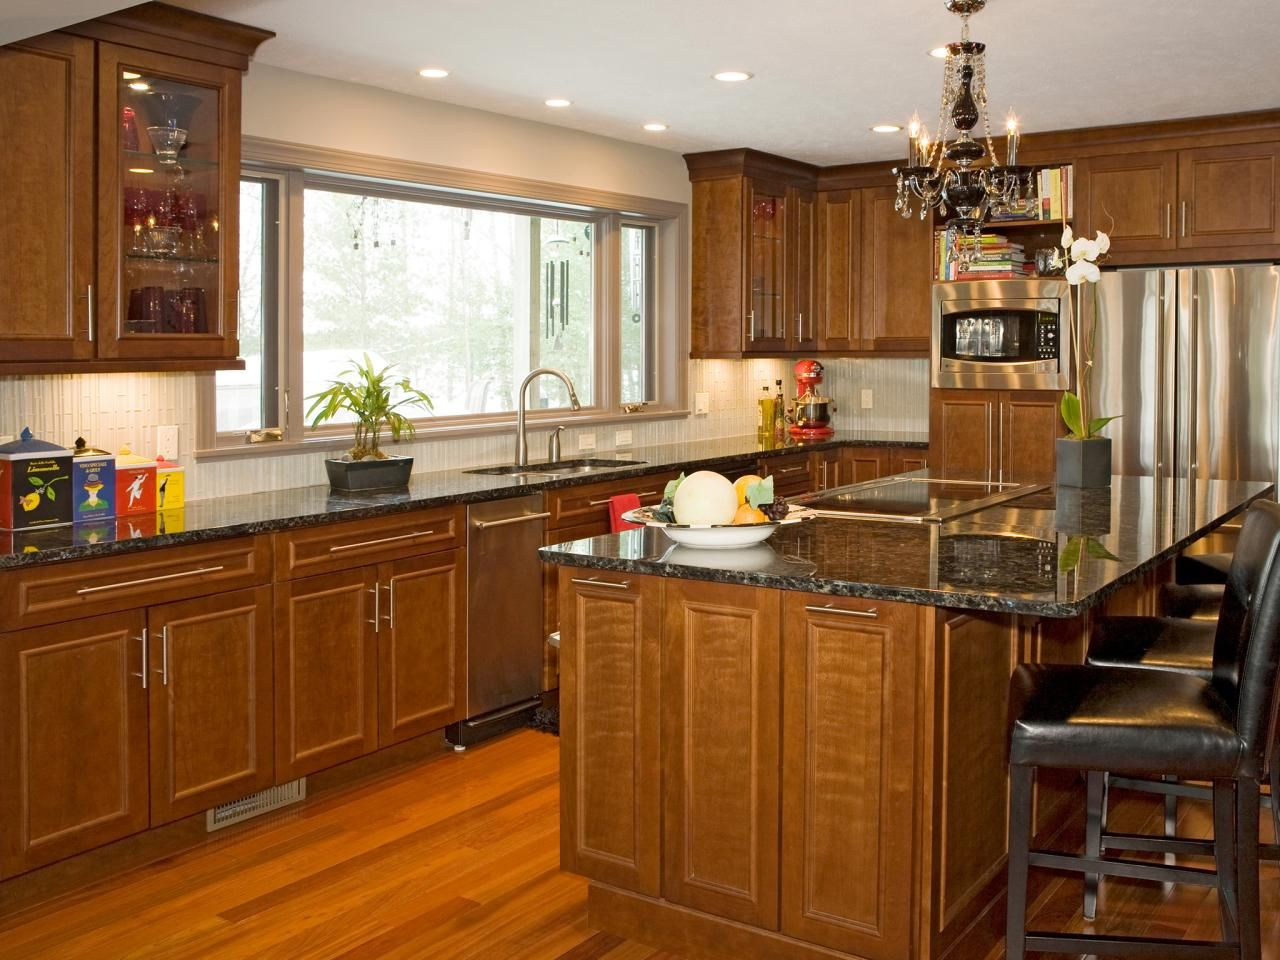 Cherry Kitchen Cabinets Pictures Options Tips Ideas Kitchen Cabinet Styles Interior Design Kitchen Classic Kitchen Cabinets